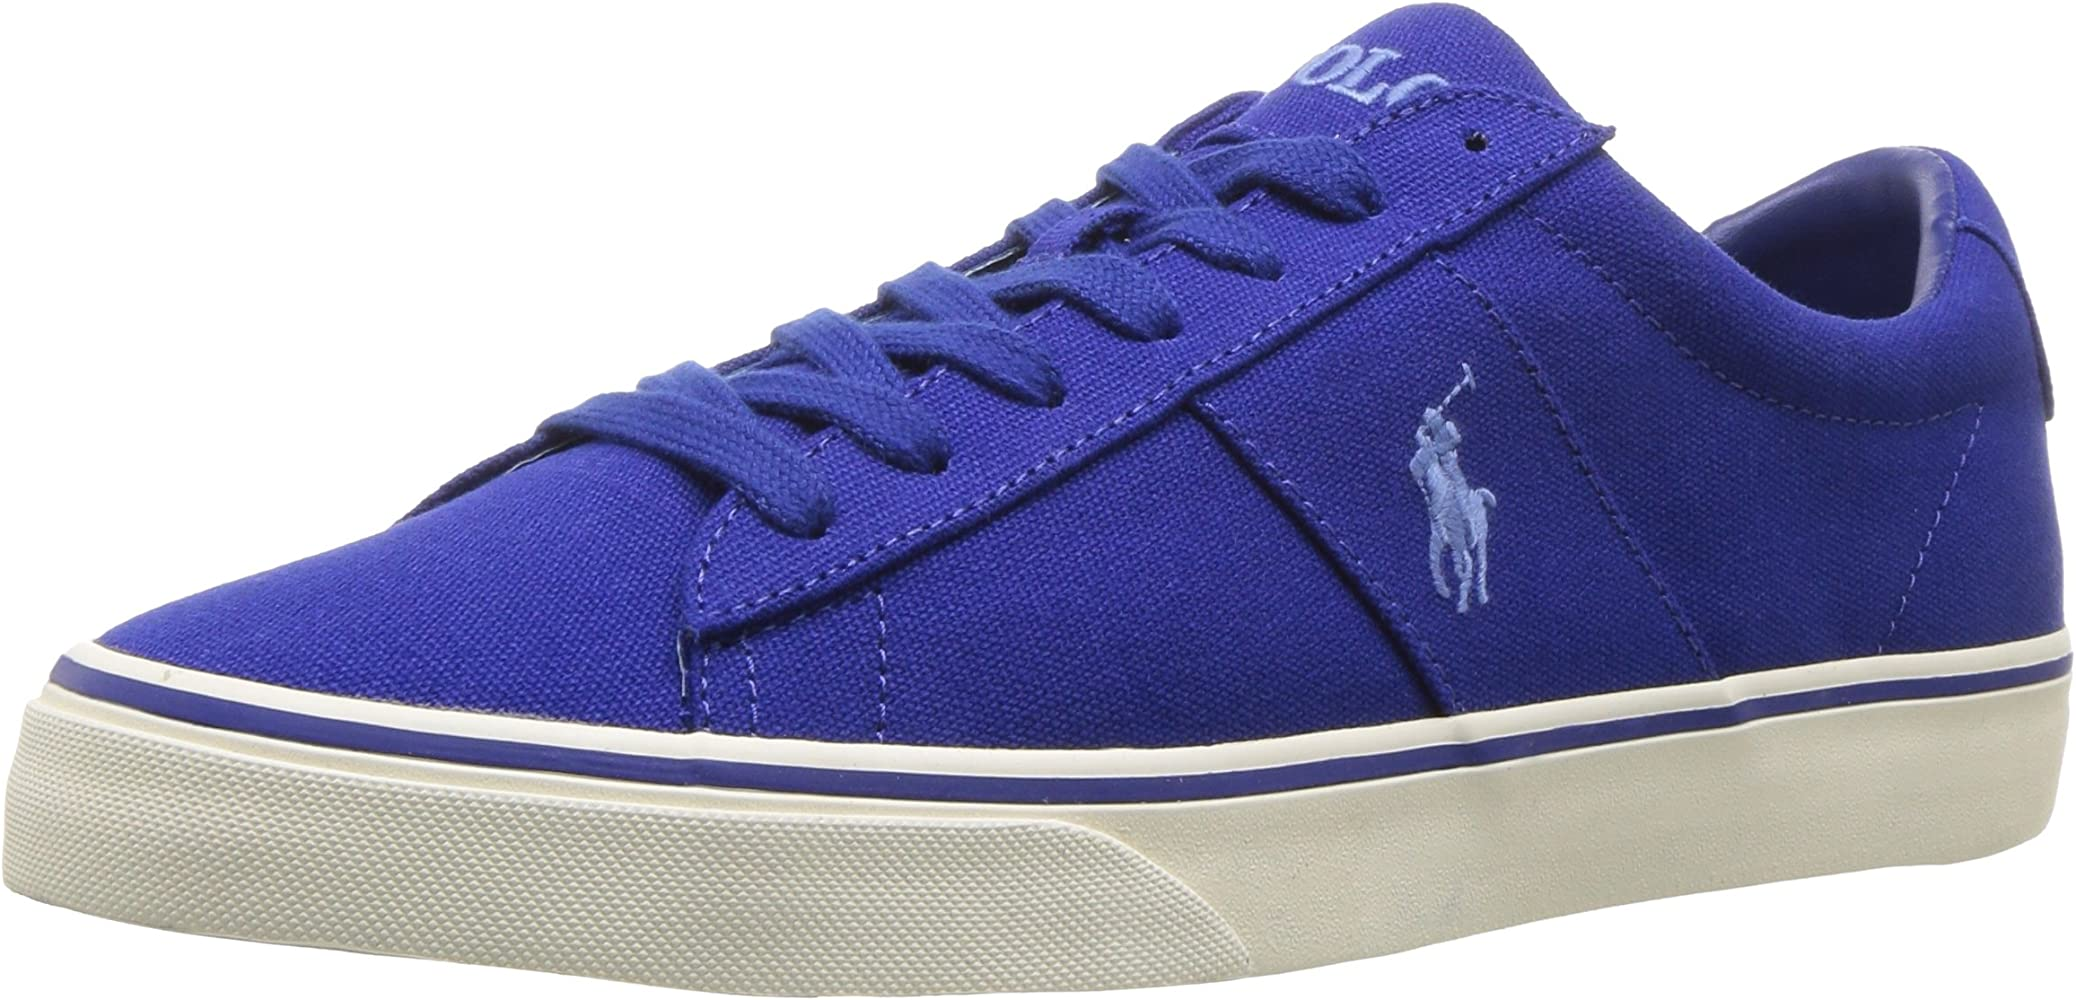 Polo Ralph Lauren Mens Sayer Sneaker: Amazon.es: Zapatos y ...